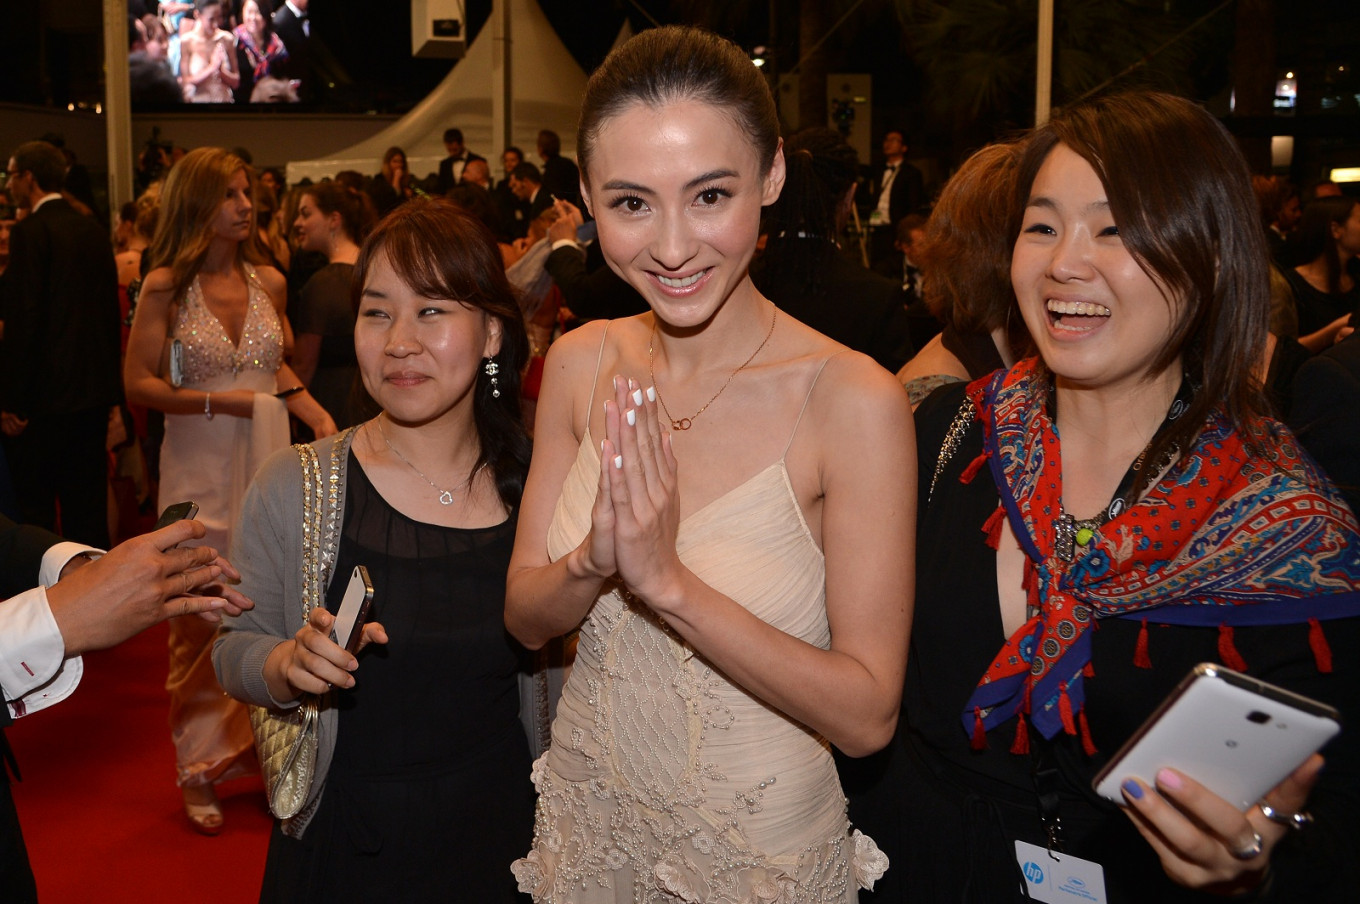 Hong Kong actress Cecilia Cheung sued for breach of contract